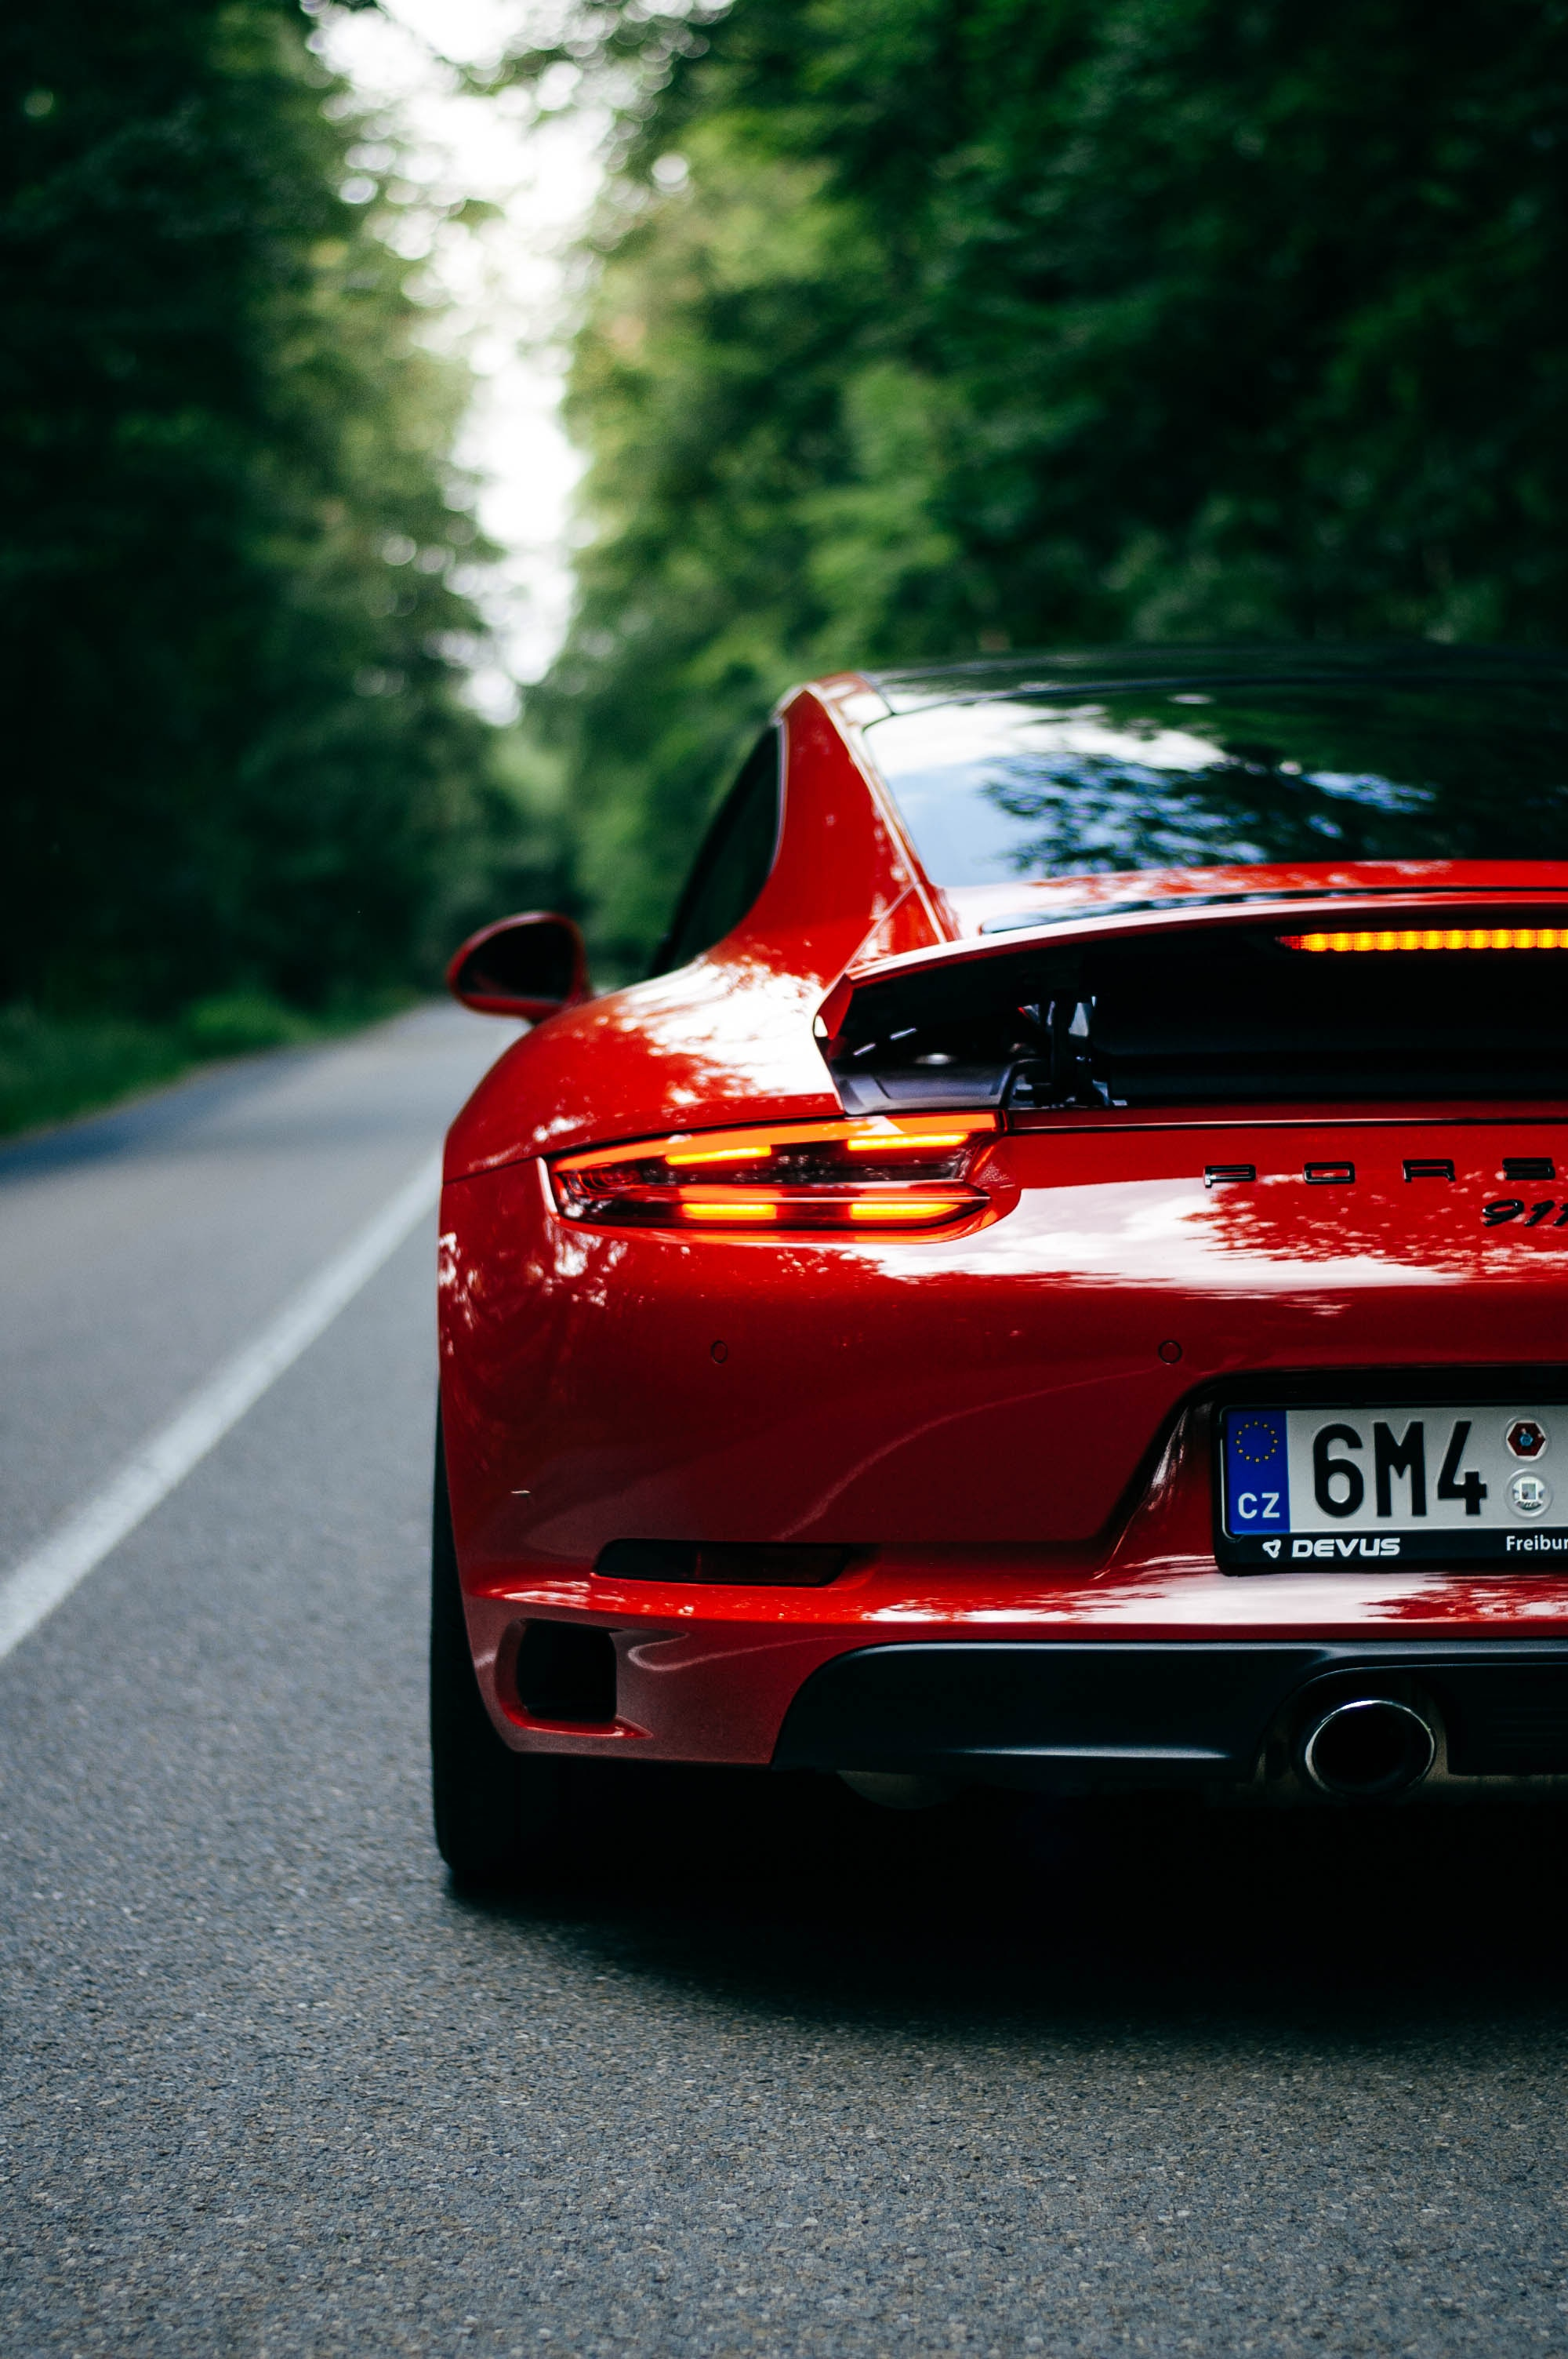 157239 download wallpaper Porsche, Sports, Cars, Road, Car, Machine, Sports Car, Back View, Rear View, Porsche 911 screensavers and pictures for free